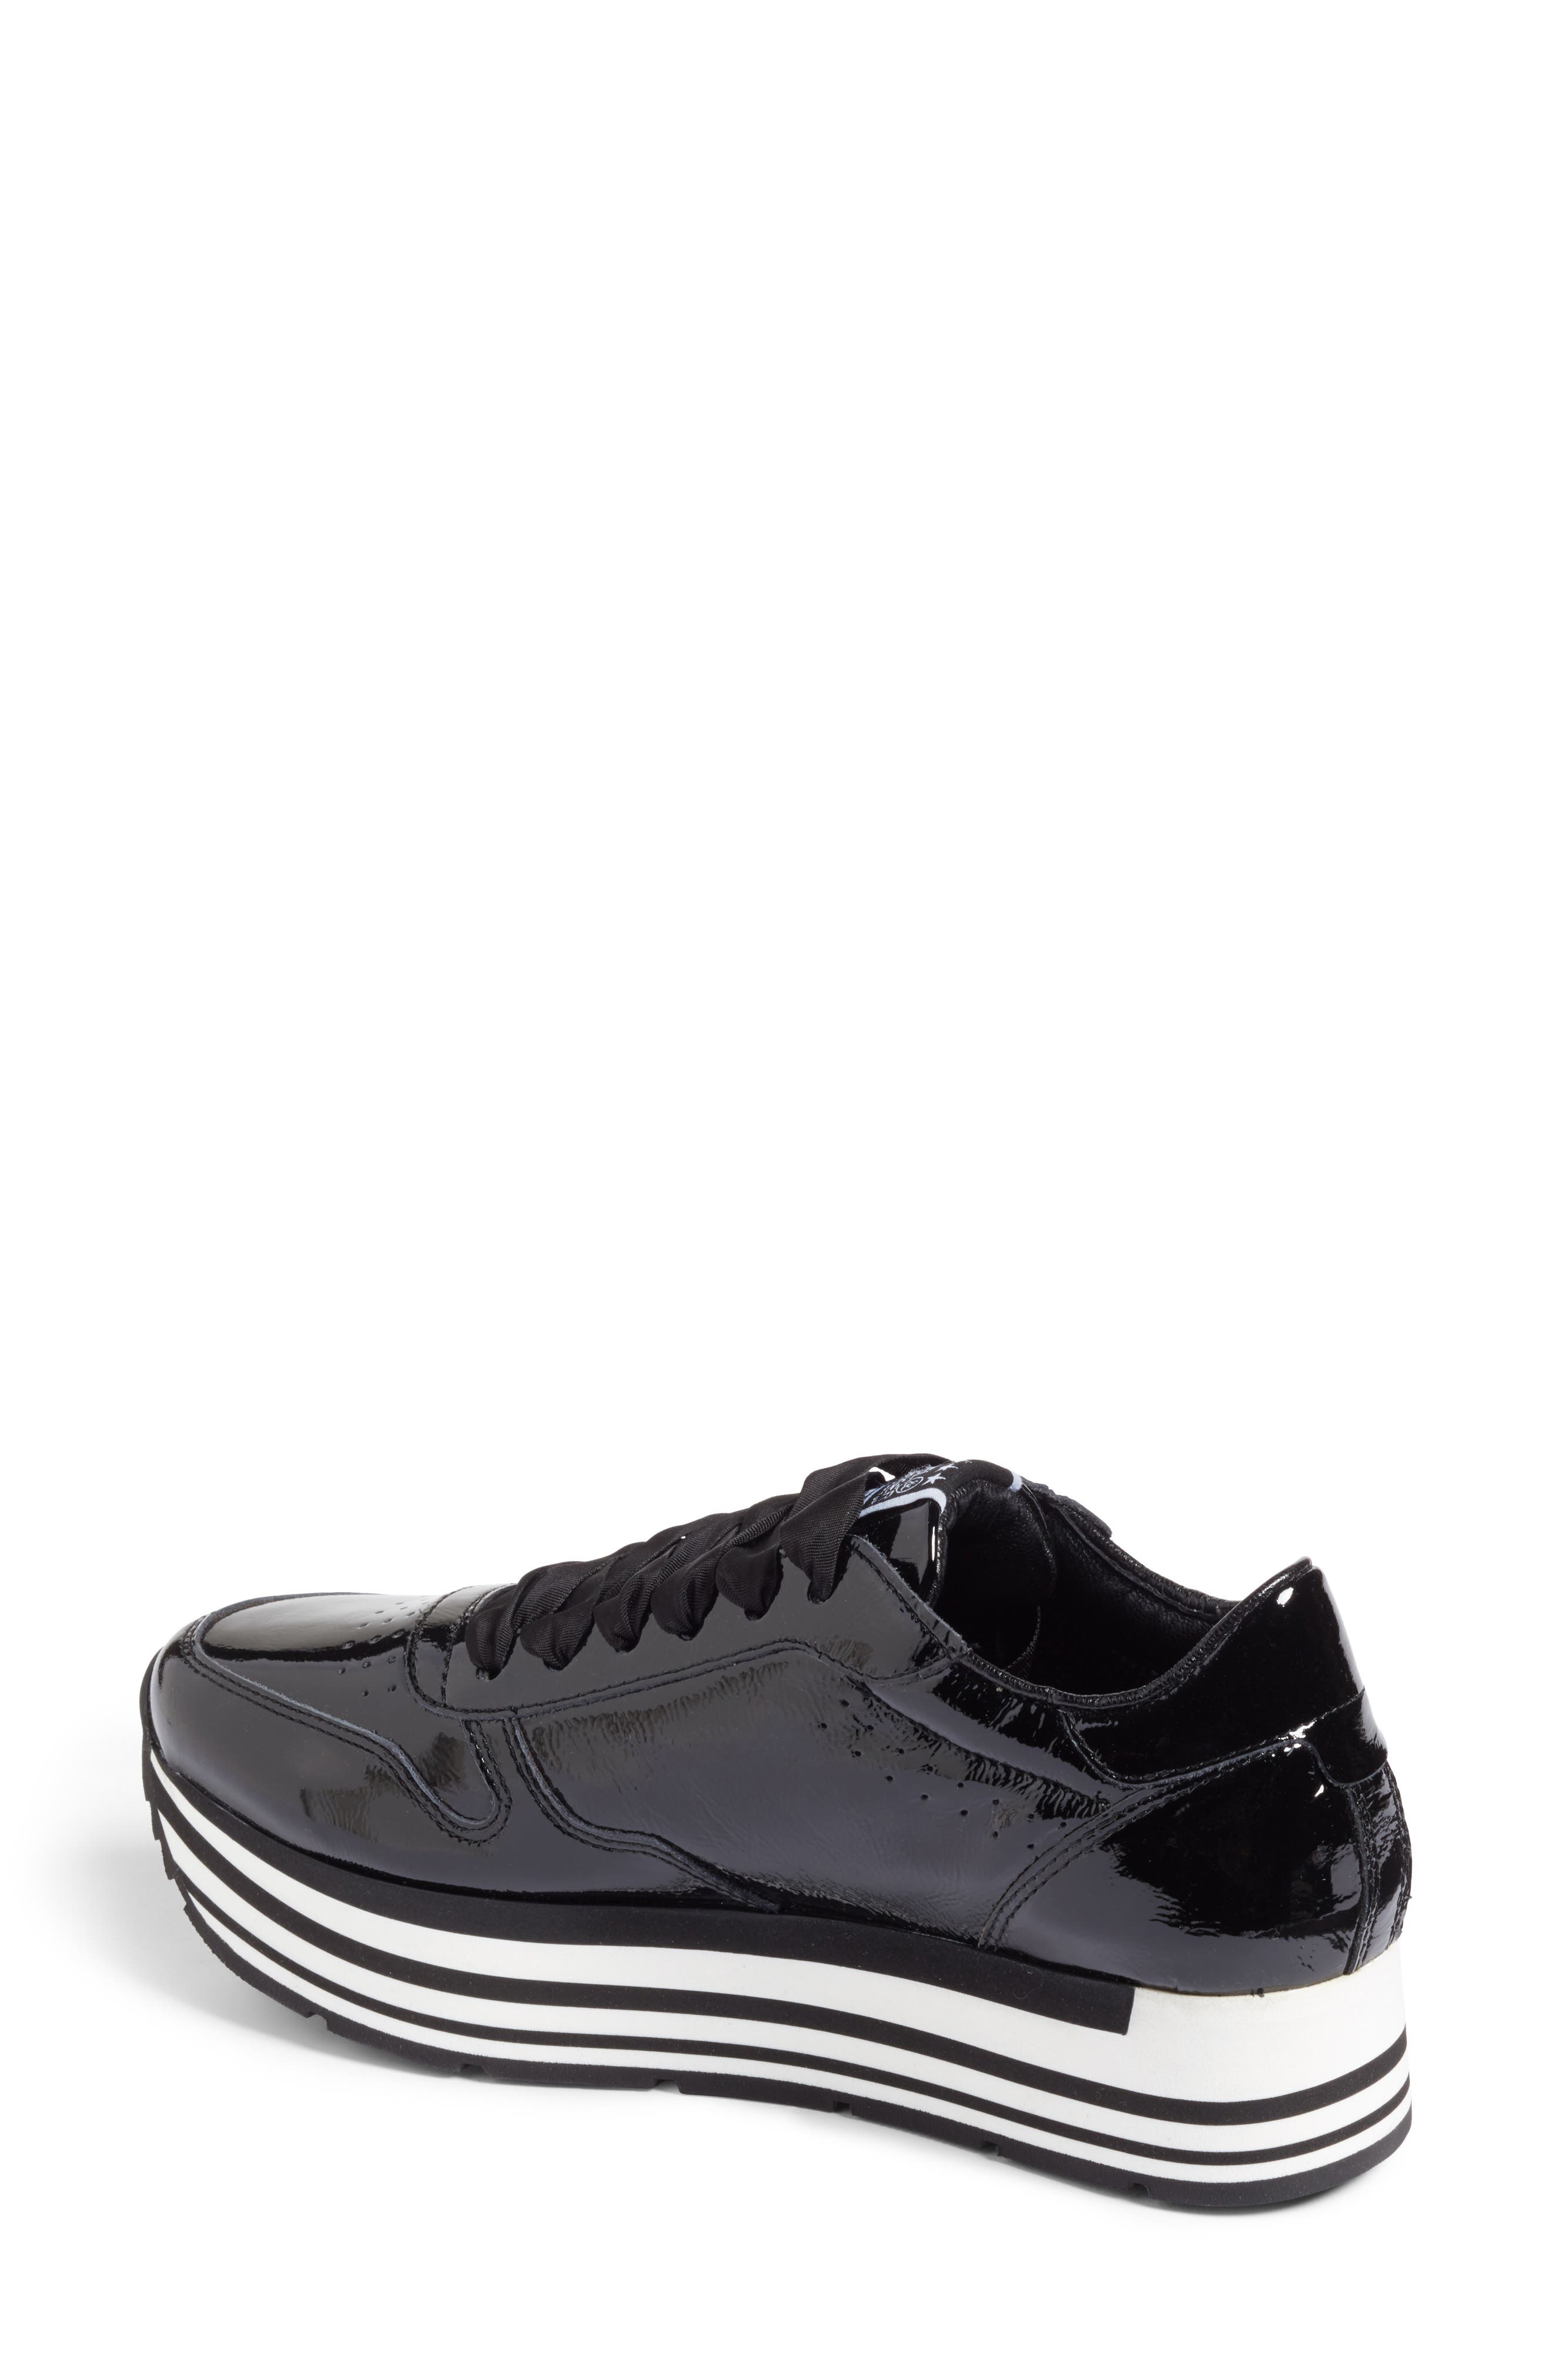 Kennel & Schmenger Nova Patent Leather Sneaker,                             Alternate thumbnail 2, color,                             001